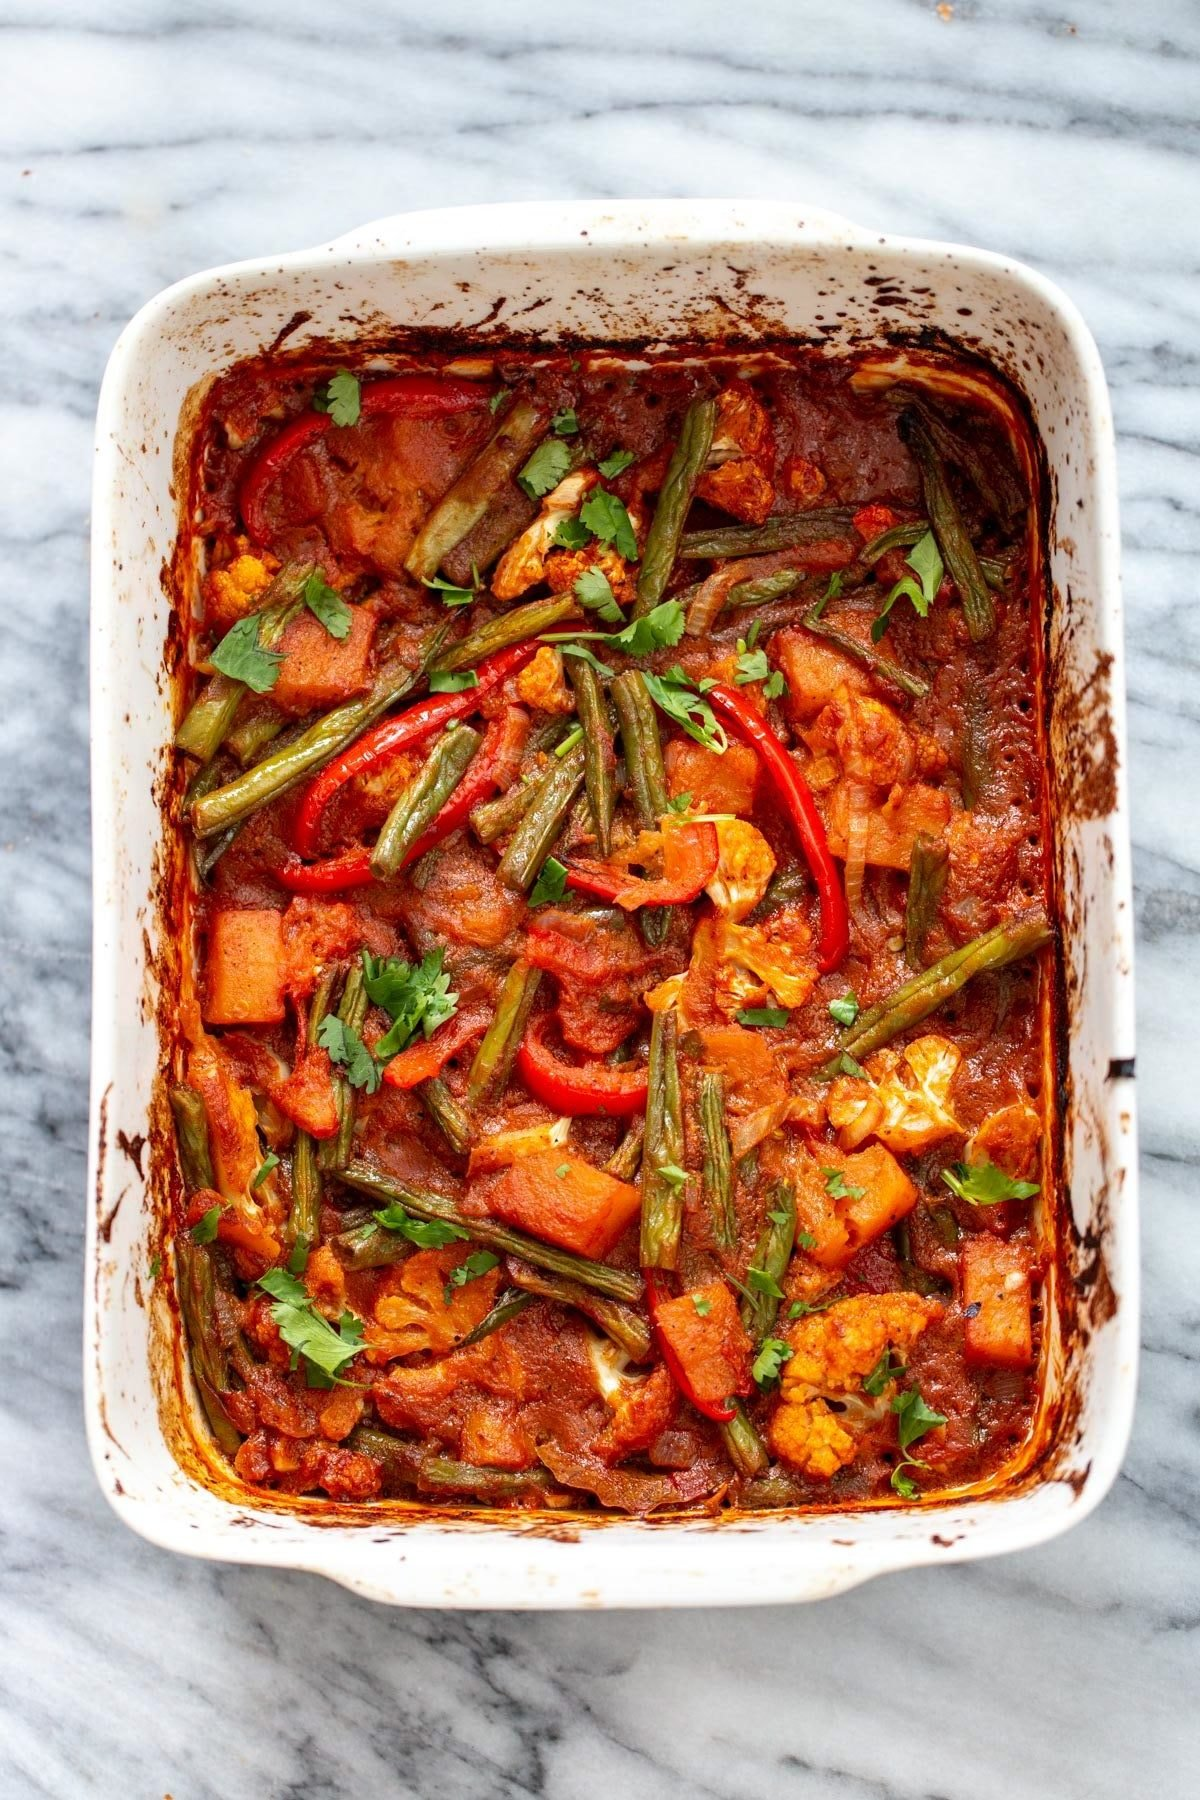 vegan curried vegetable casserole fresh out of the oven